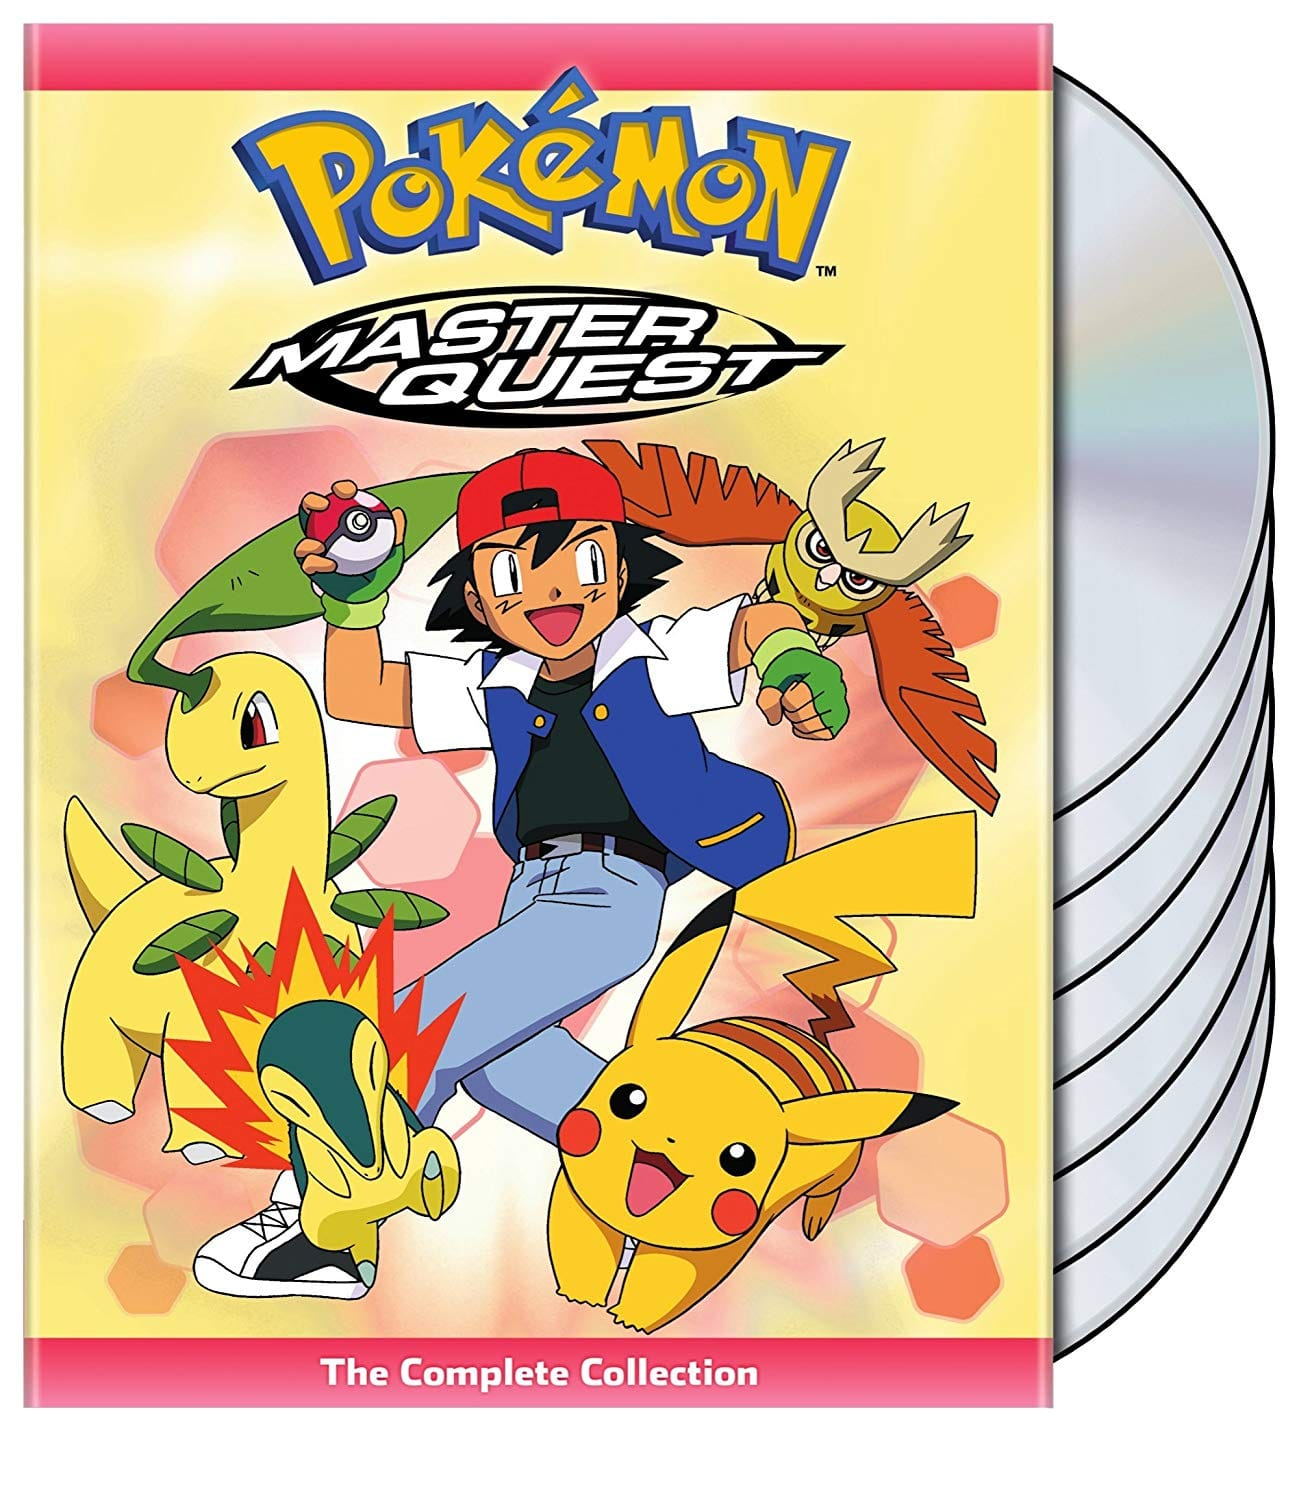 Pokemon: Master Quest The Complete Collection (7-Disc DVD) $11.99 via Amazon/Best Buy